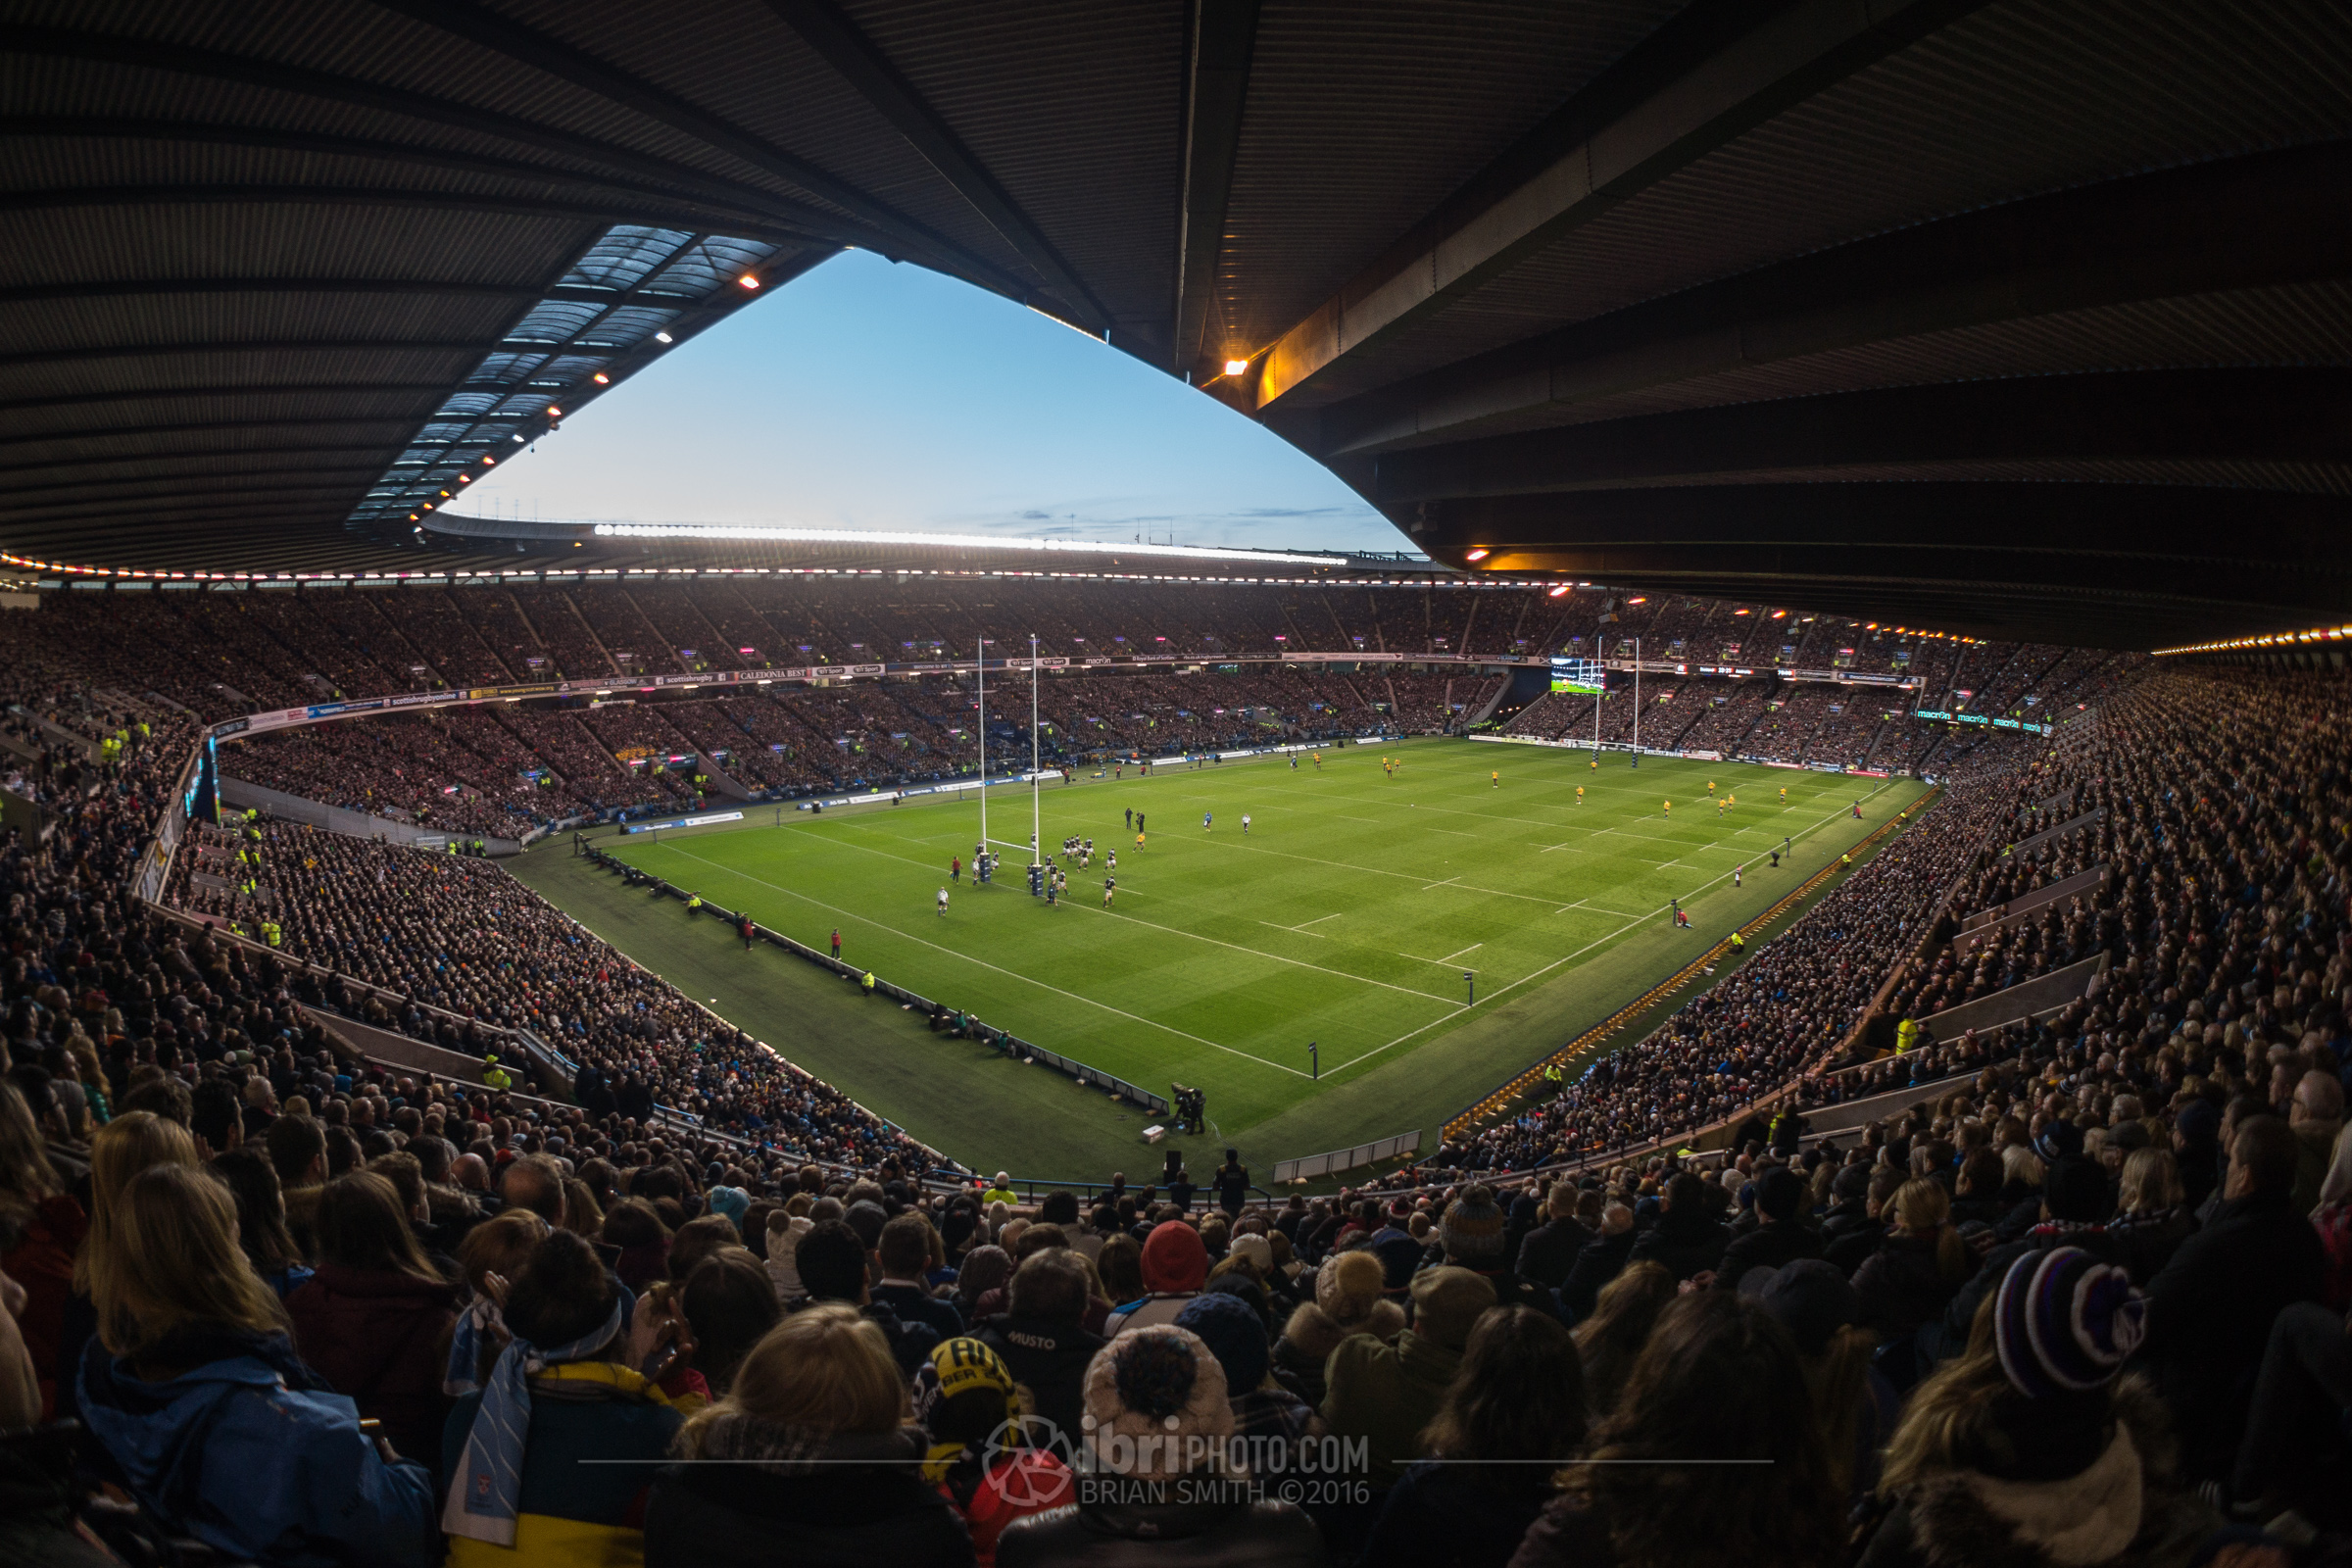 The Murrayfield Sigh